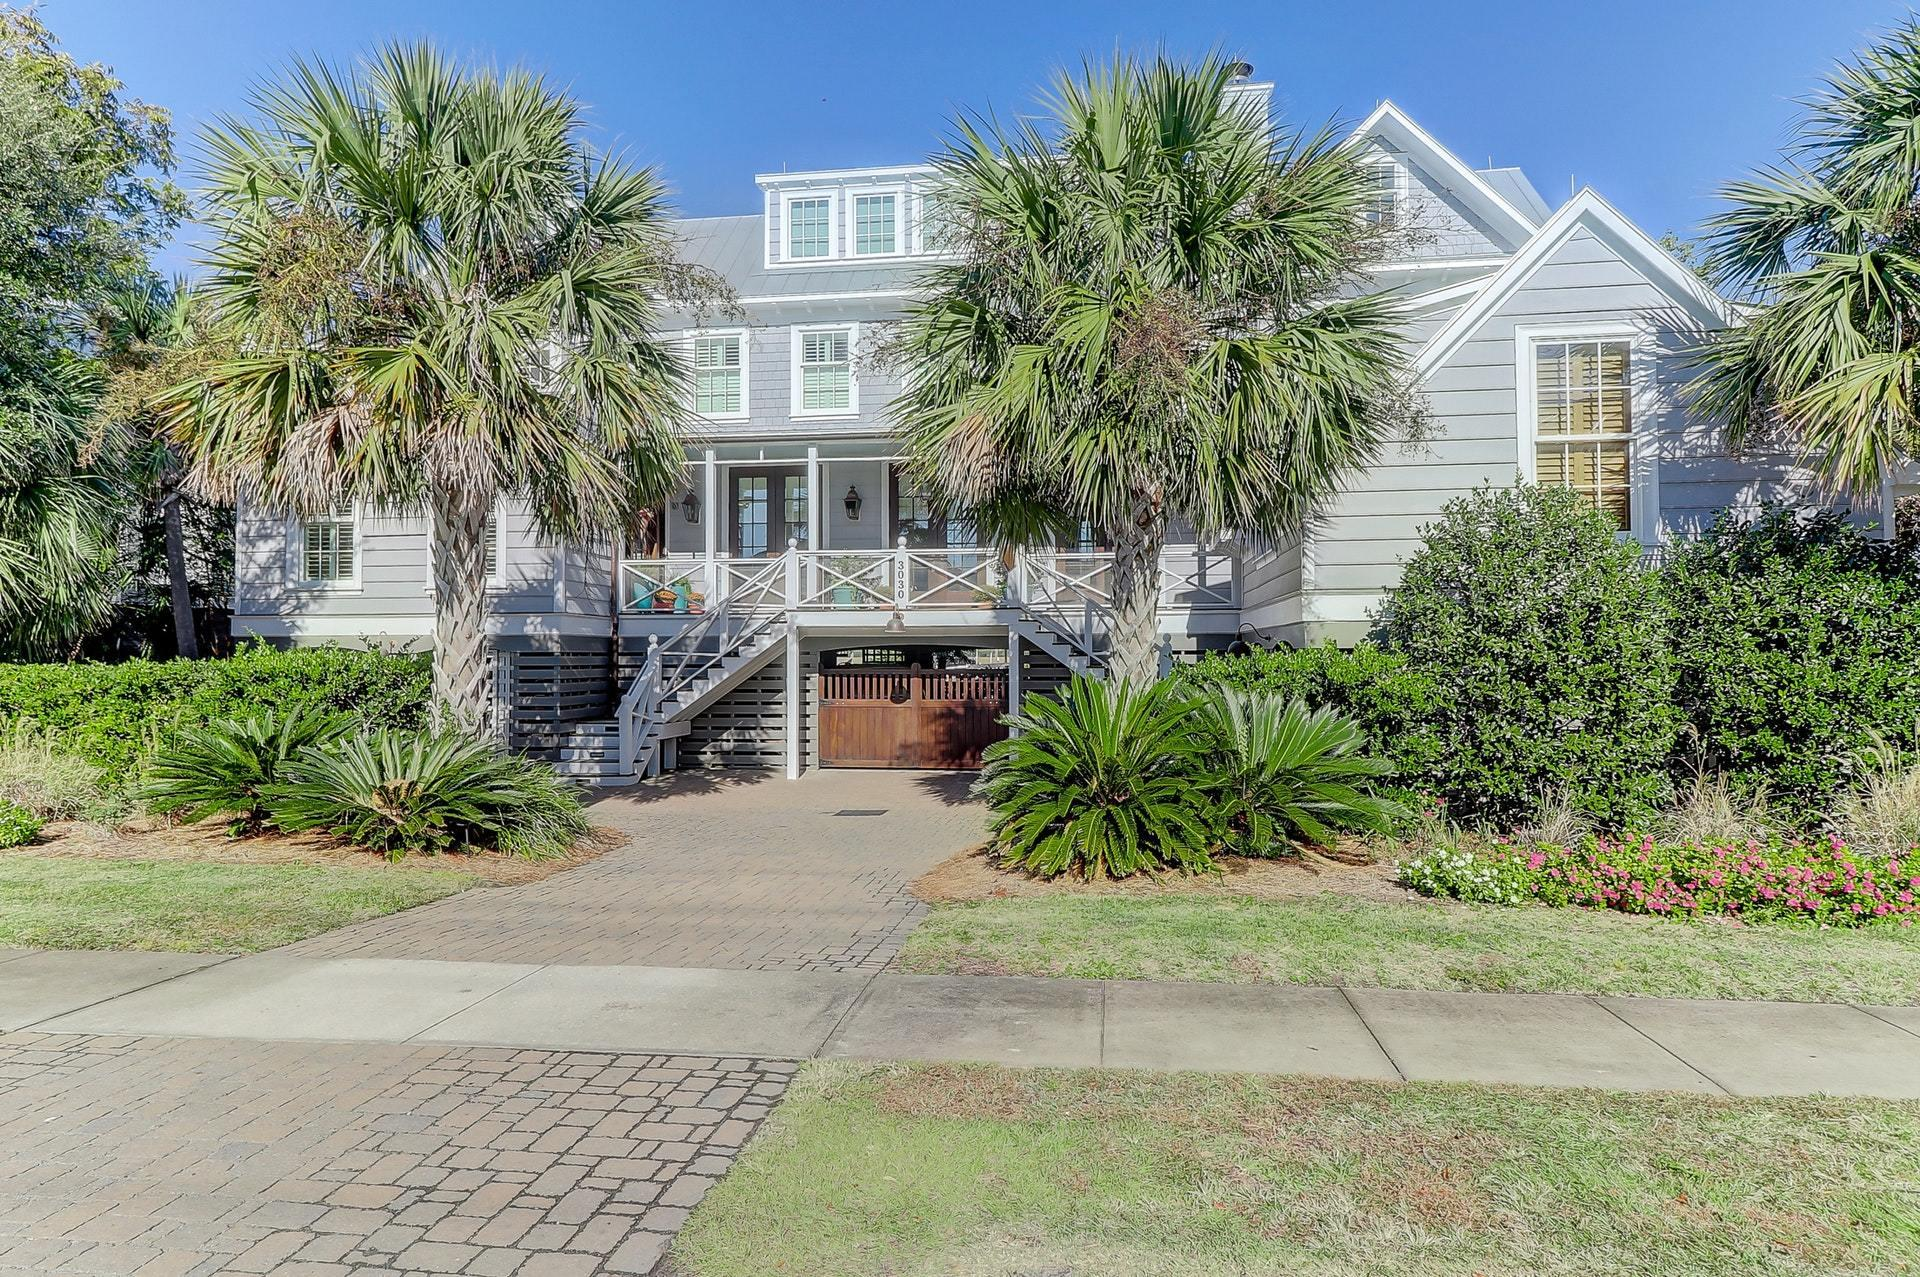 Sullivans Island Homes For Sale - 3030 Jasper, Sullivans Island, SC - 15